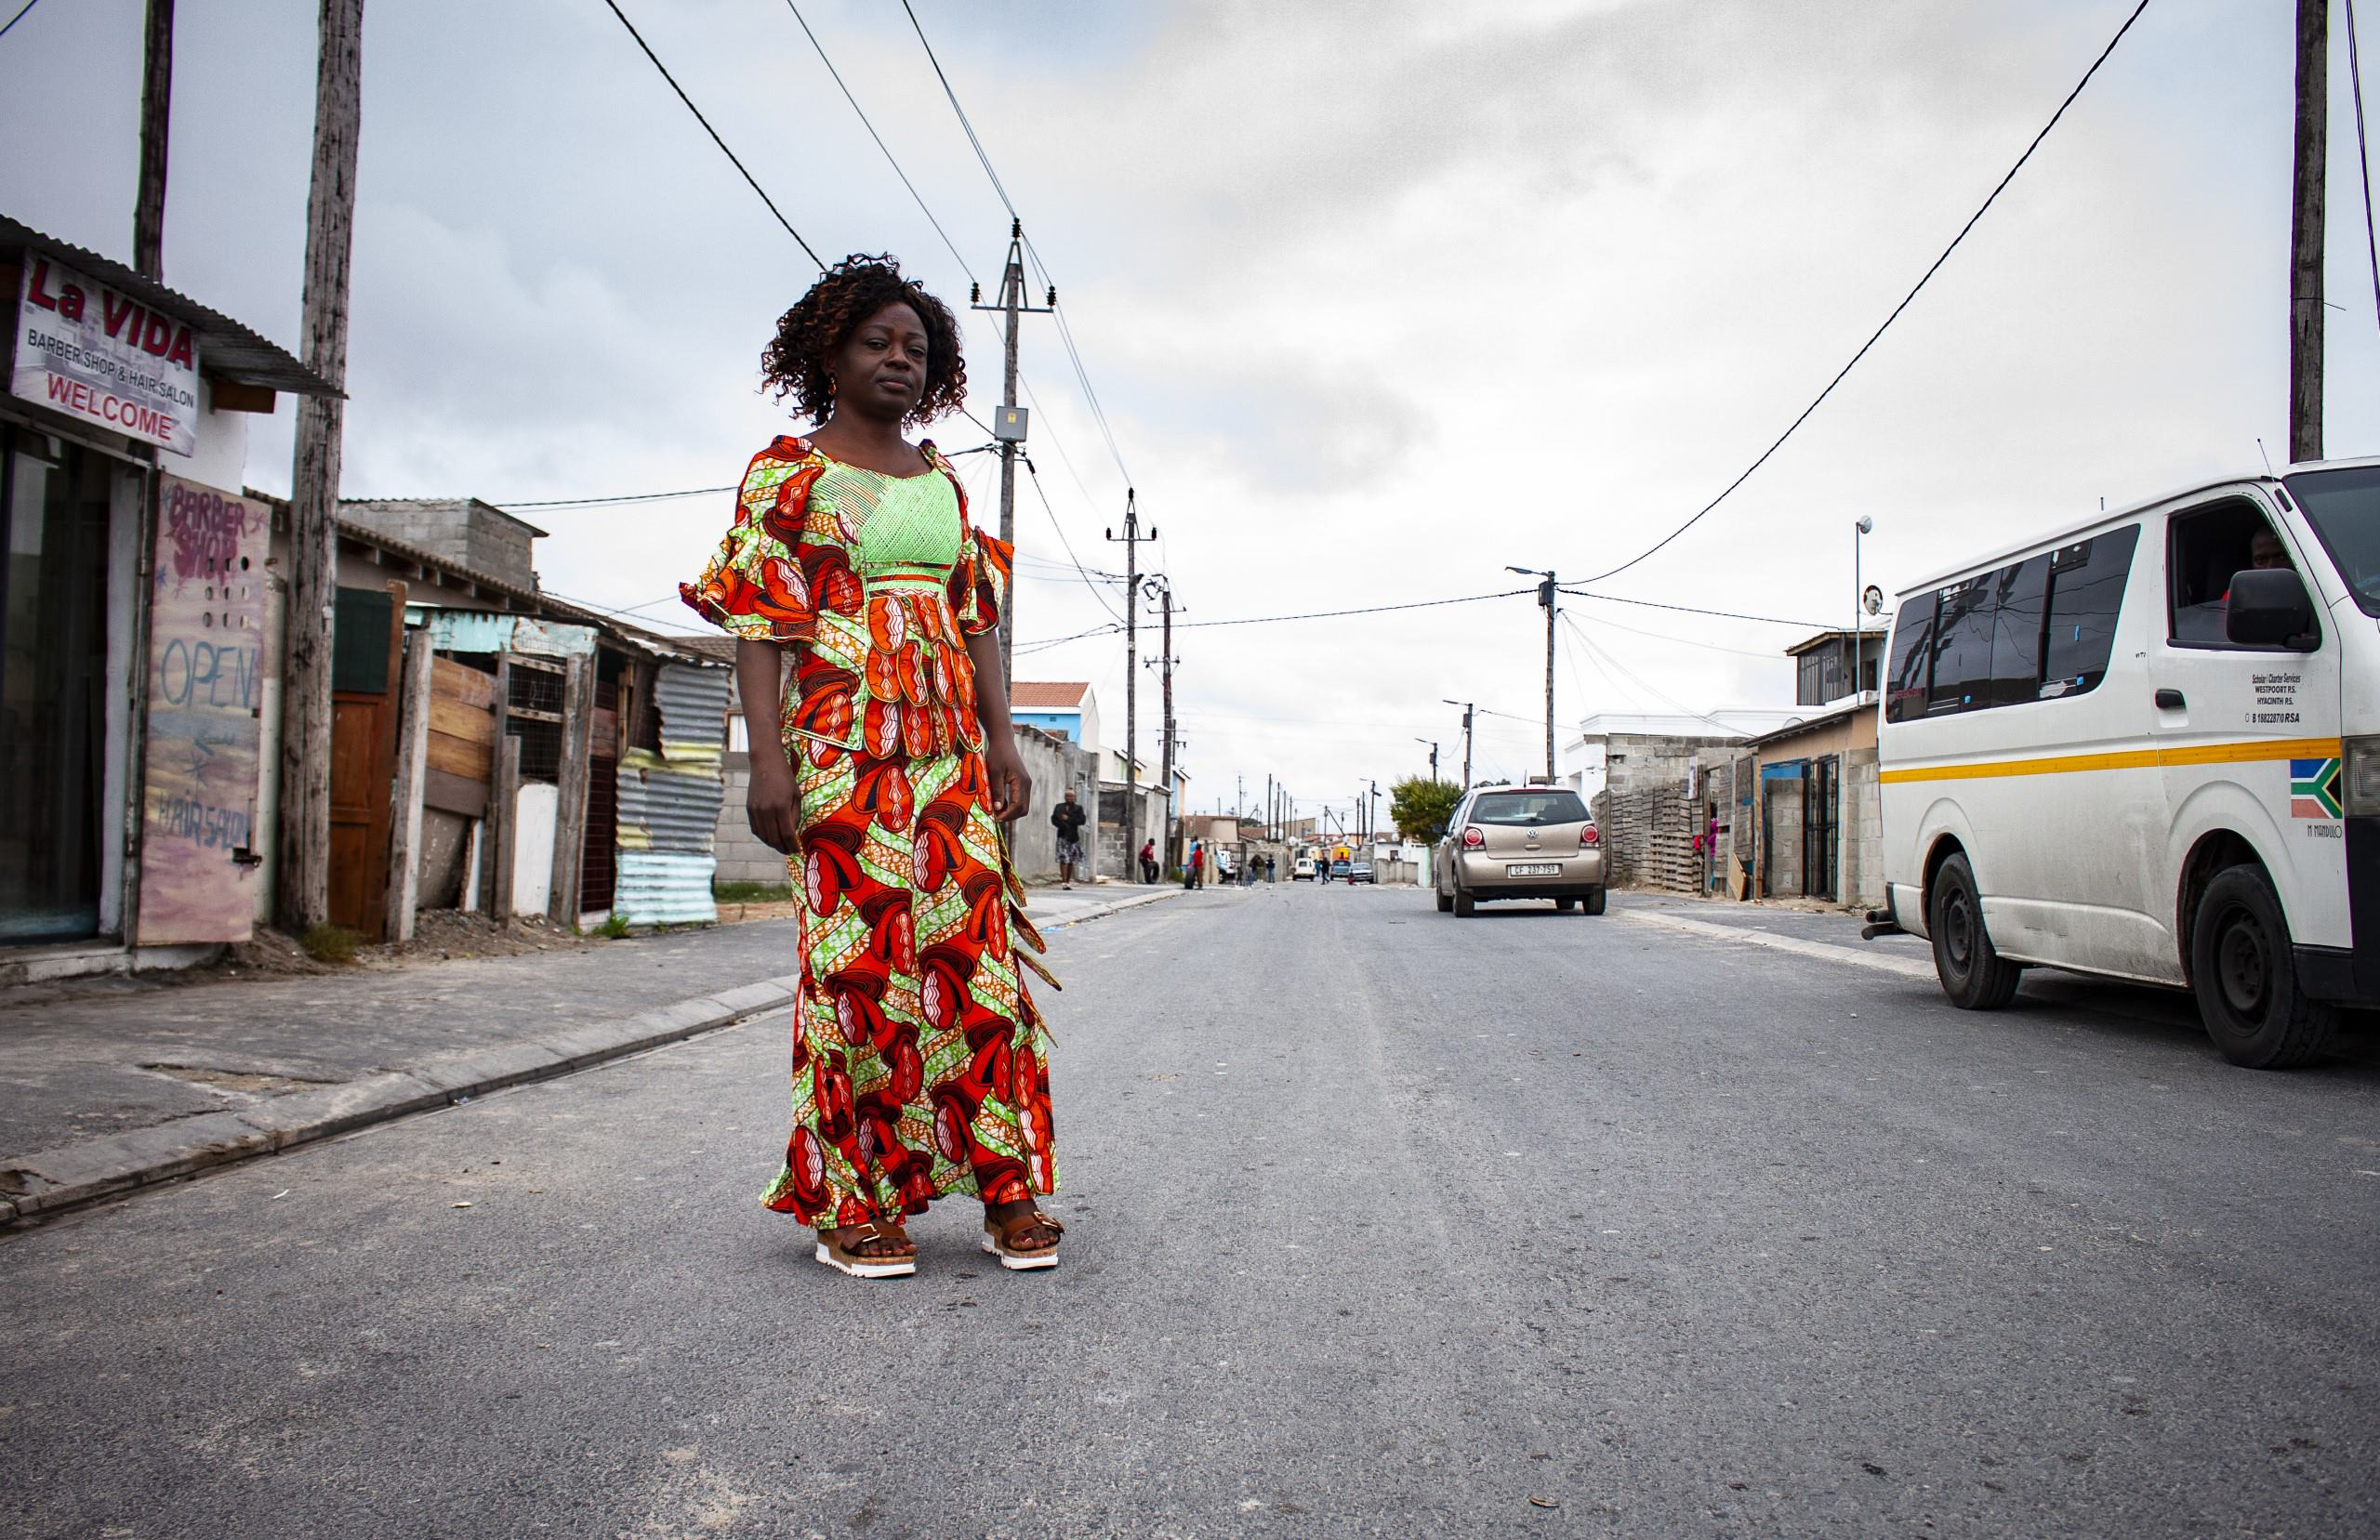 Therese in her neighbourhood, Delft, Cape Town. Suggested Credit Quentin Pichon/ Scalabrini